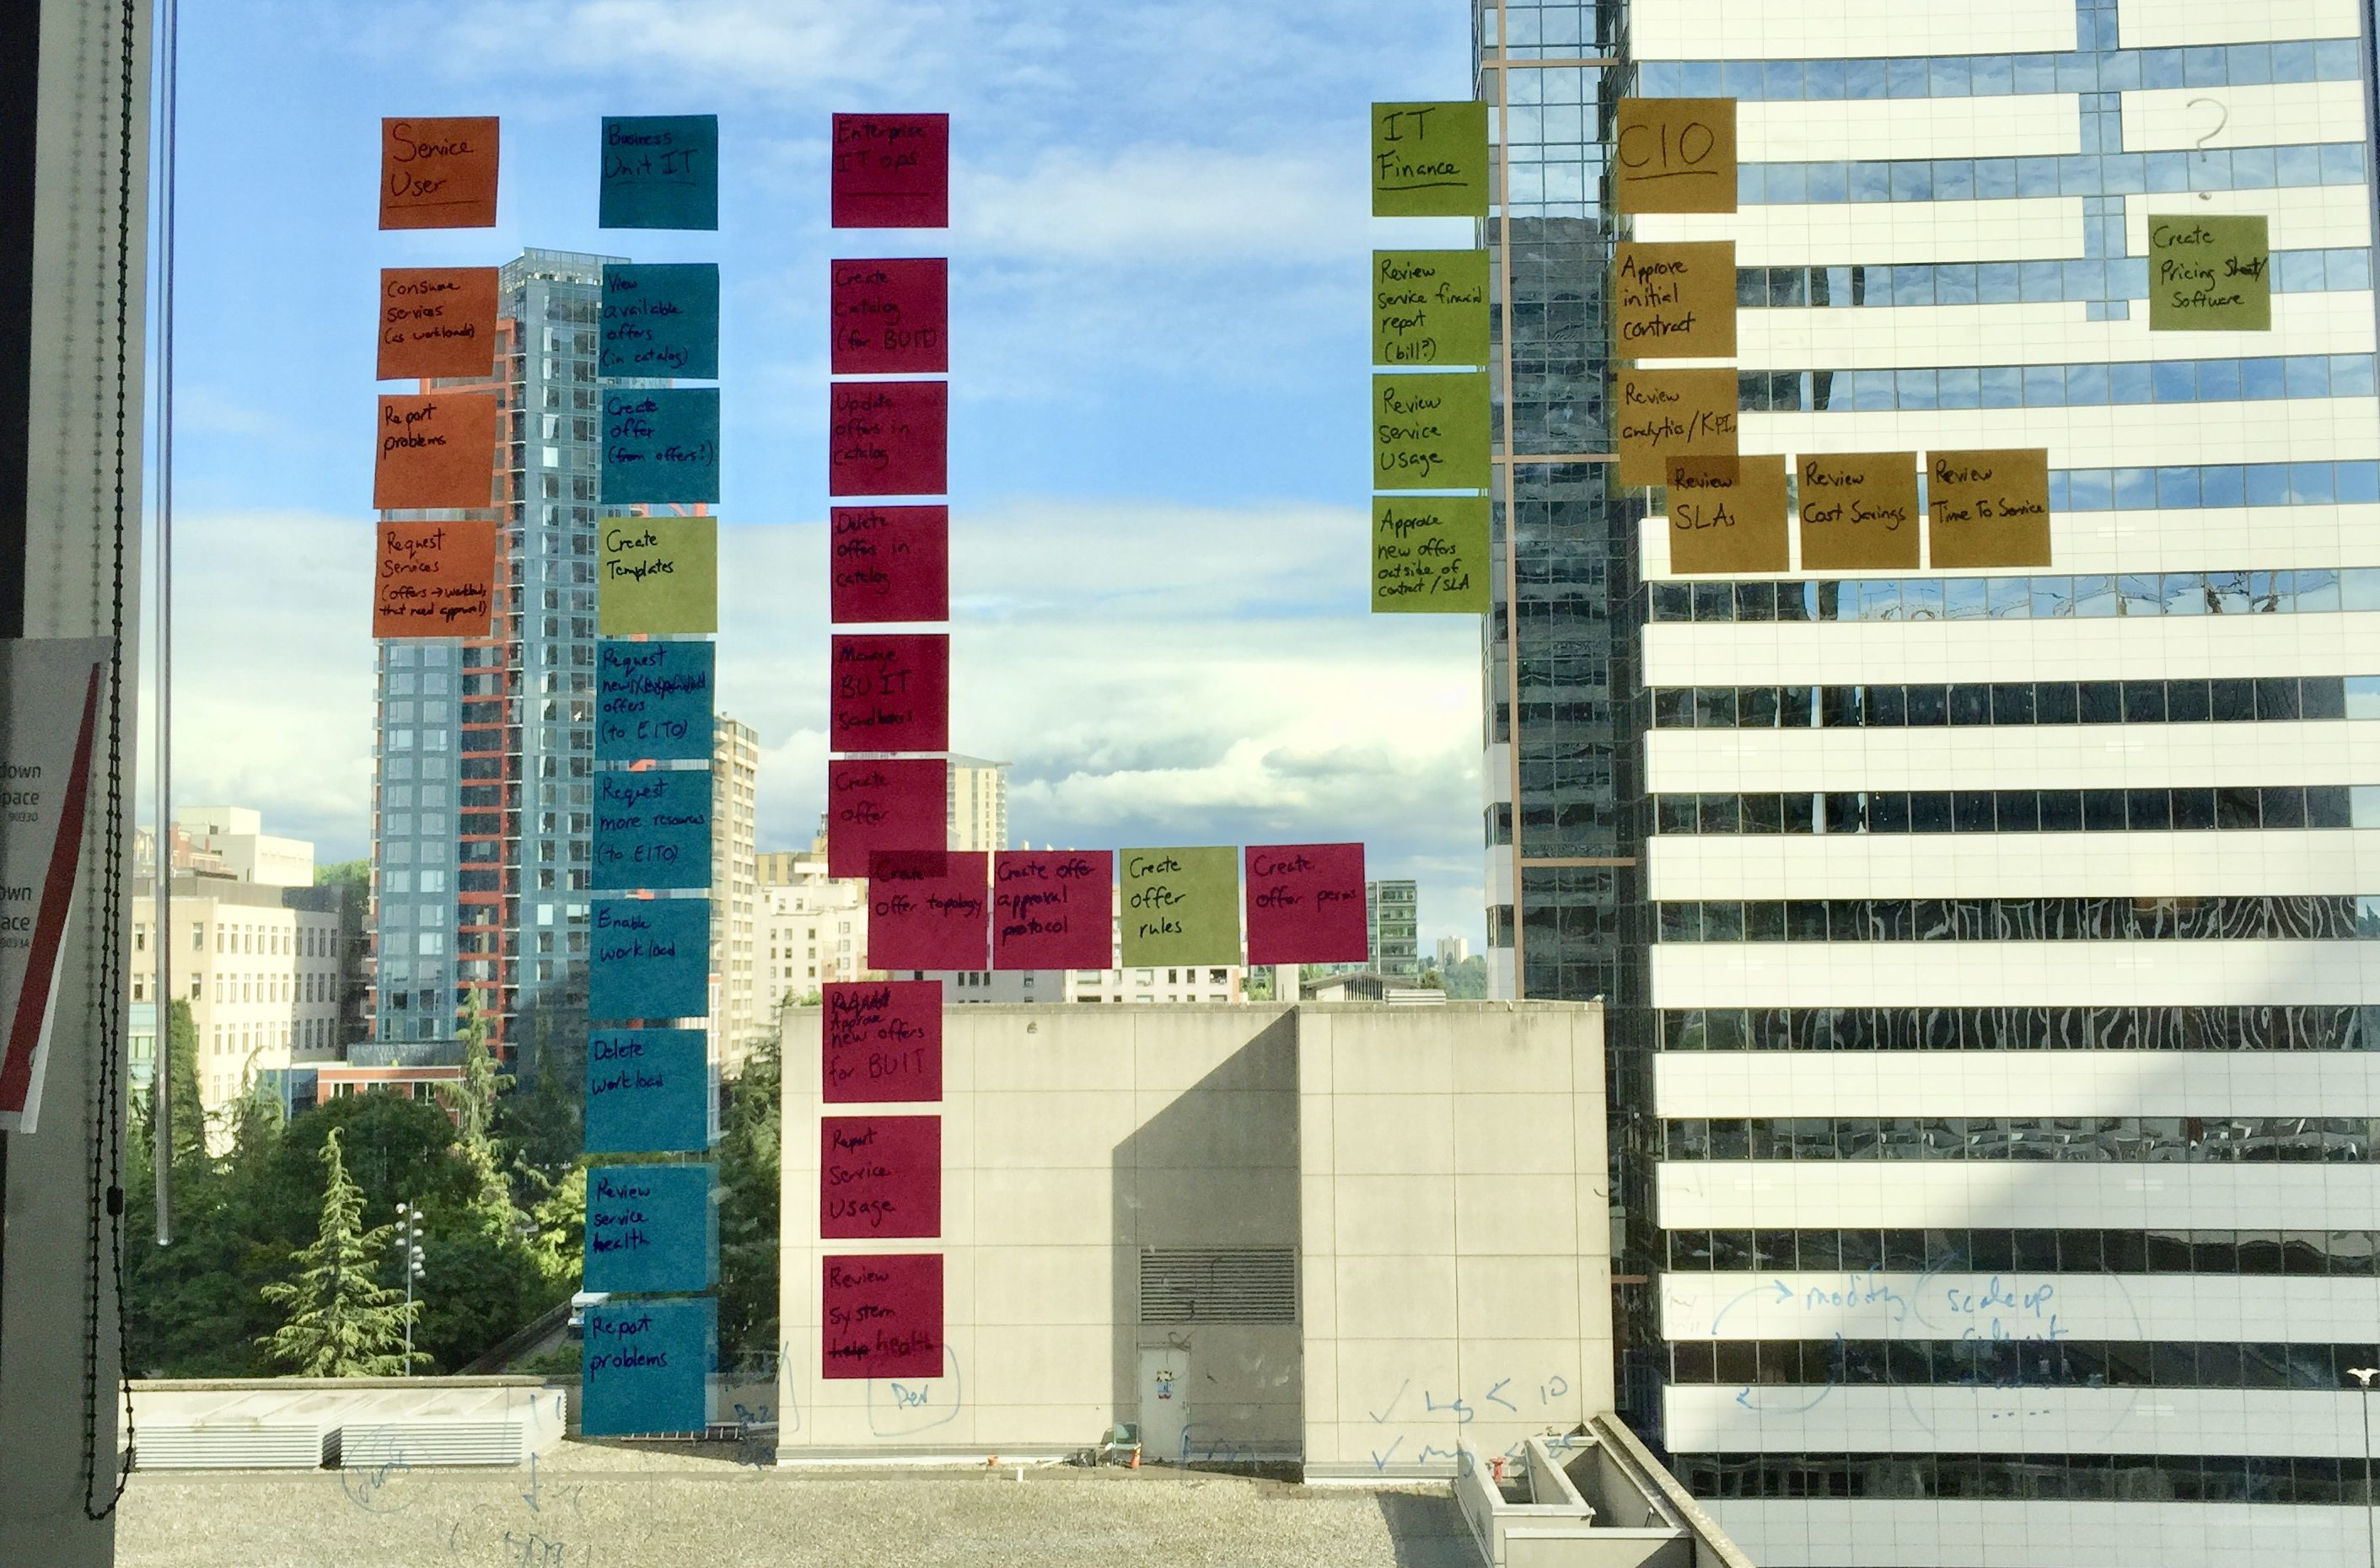 Post-it notes of different colors in columns on an office window